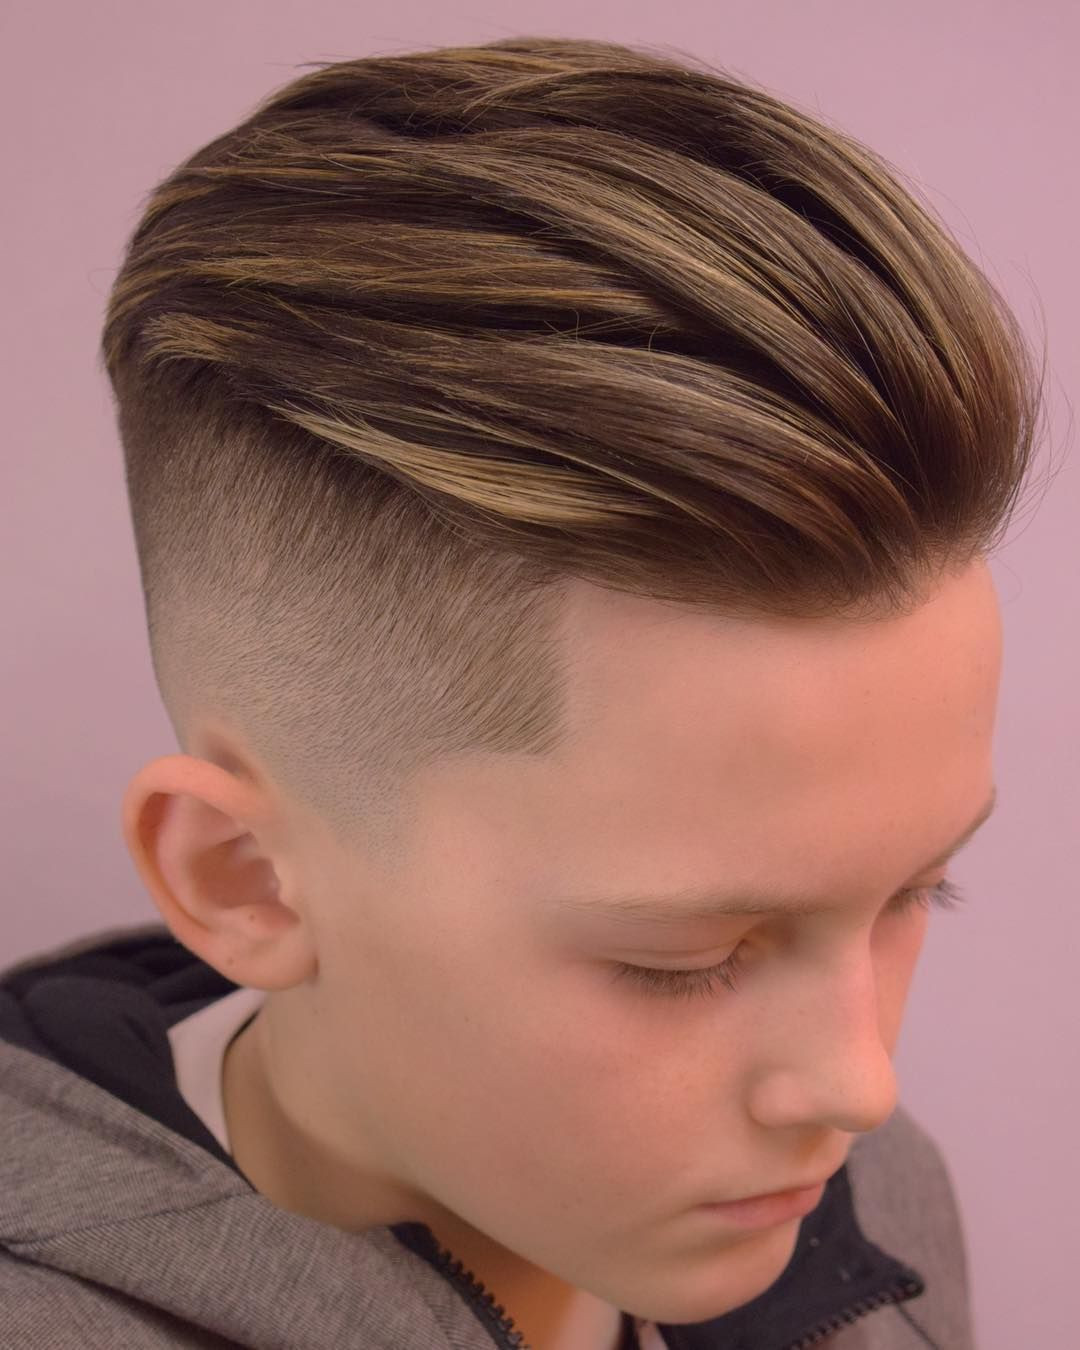 Best ideas about Boy Undercut Hairstyle . Save or Pin Undercuts hairstyles boys Now.